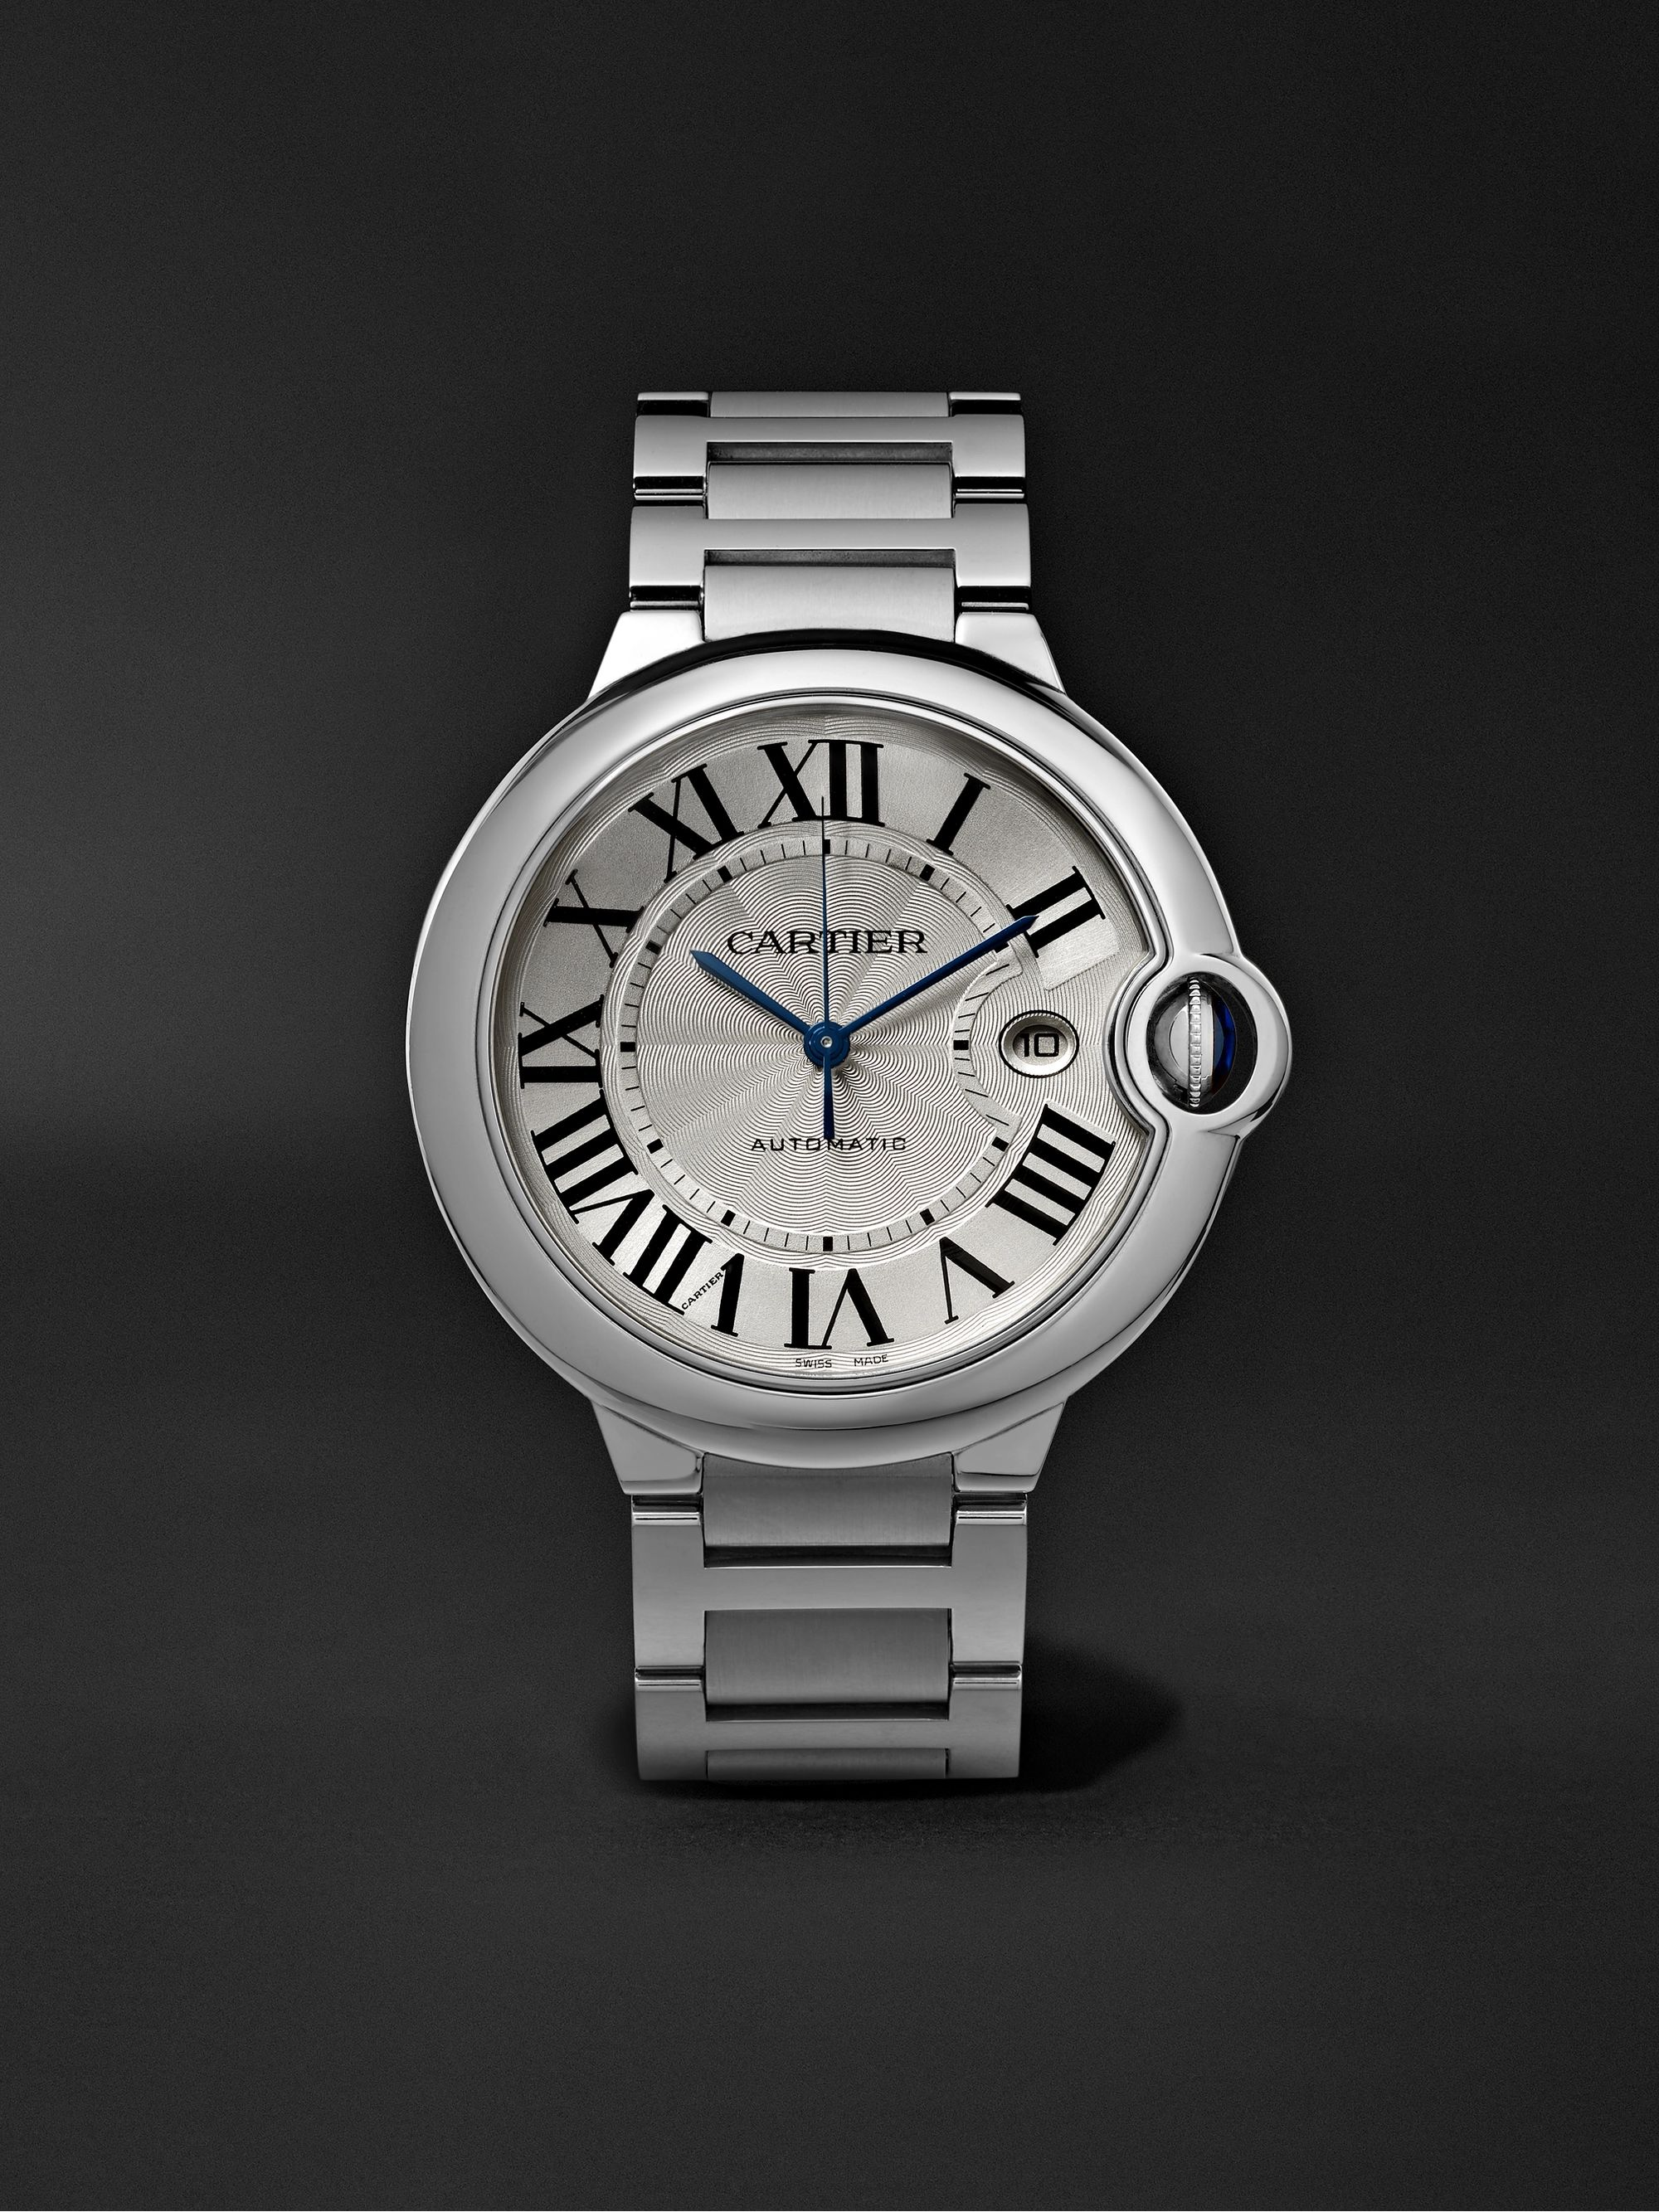 CARTIER Ballon Bleu Automatic 42mm Steel Watch, Ref. No. CRW69012Z4